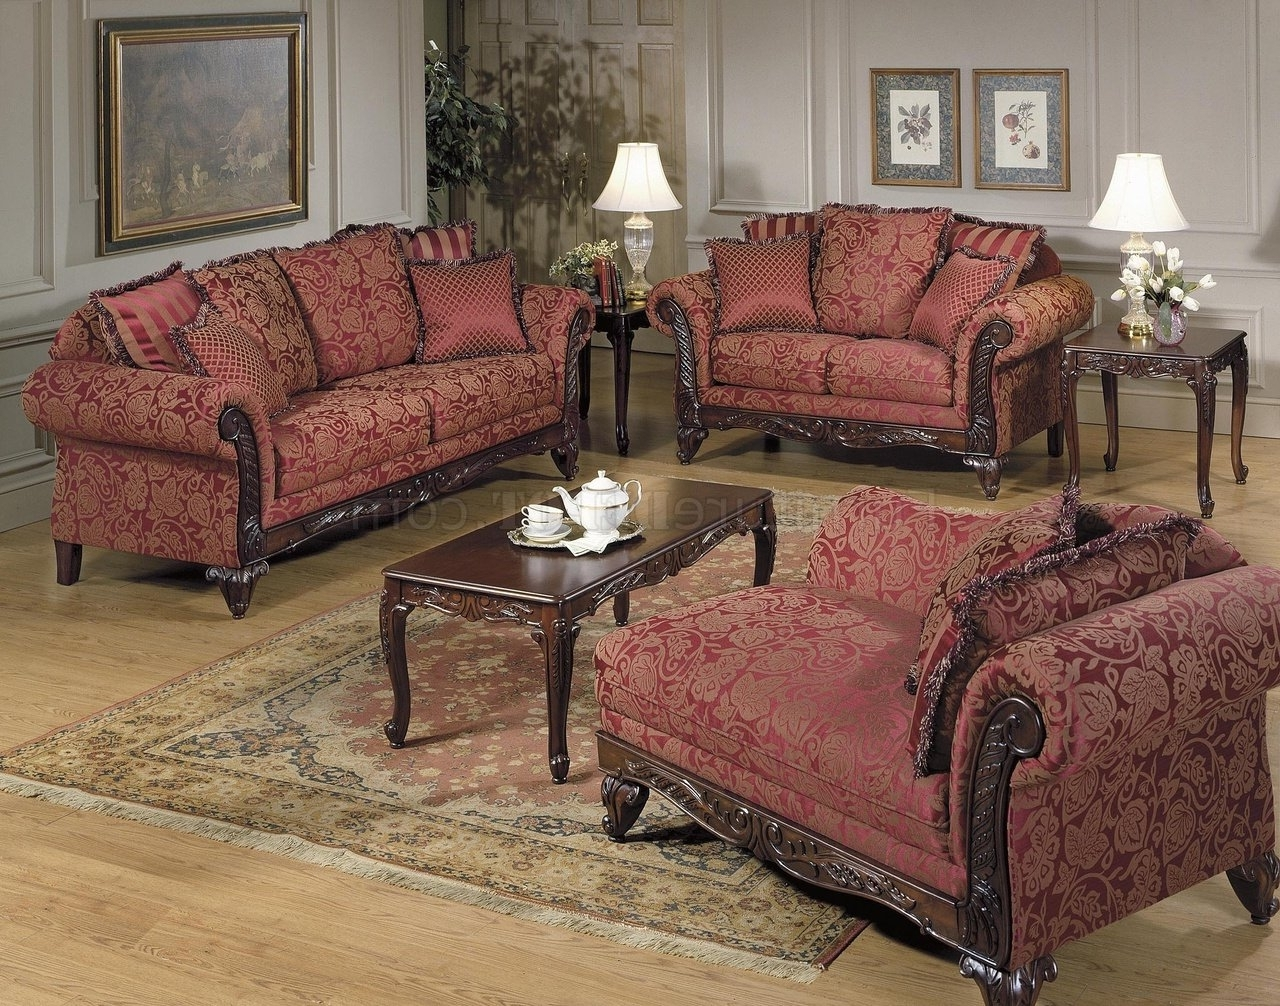 Best Sofa Deals Elegant Sofas Living Room Furniture Chairs Living With Fashionable Elegant Sofas And Chairs (View 9 of 20)